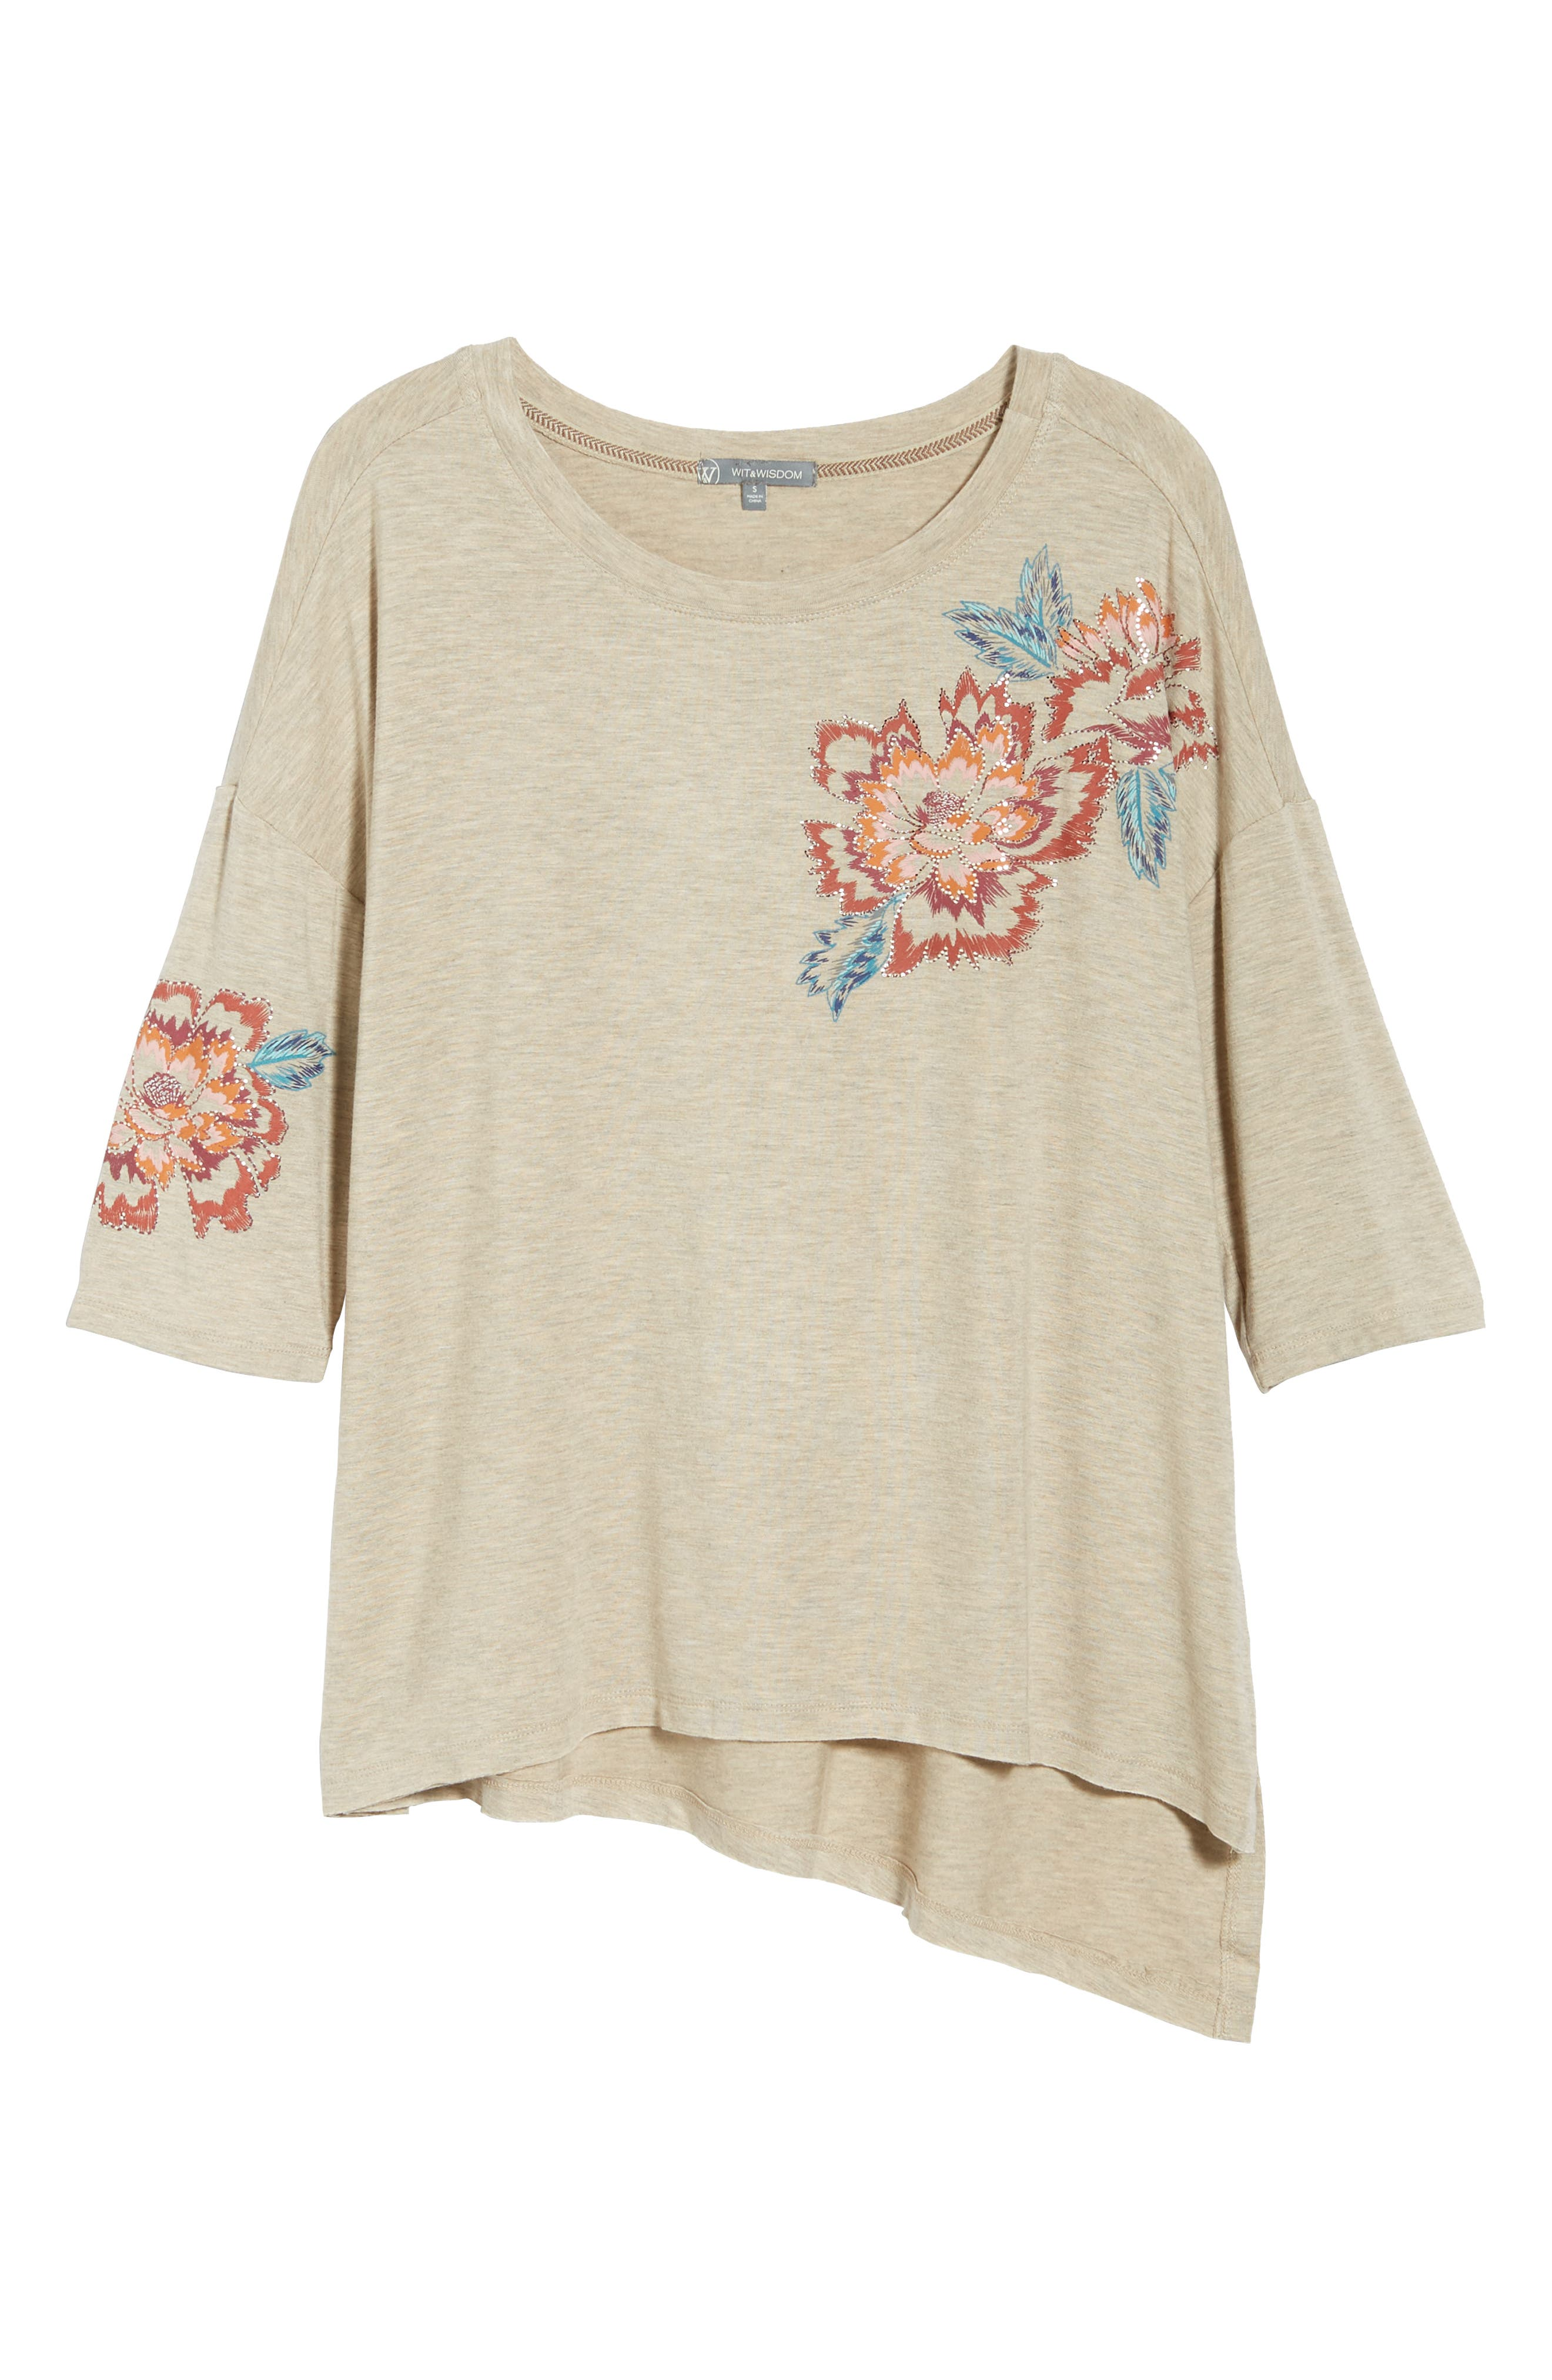 Floral Print Top,                             Alternate thumbnail 6, color,                             279